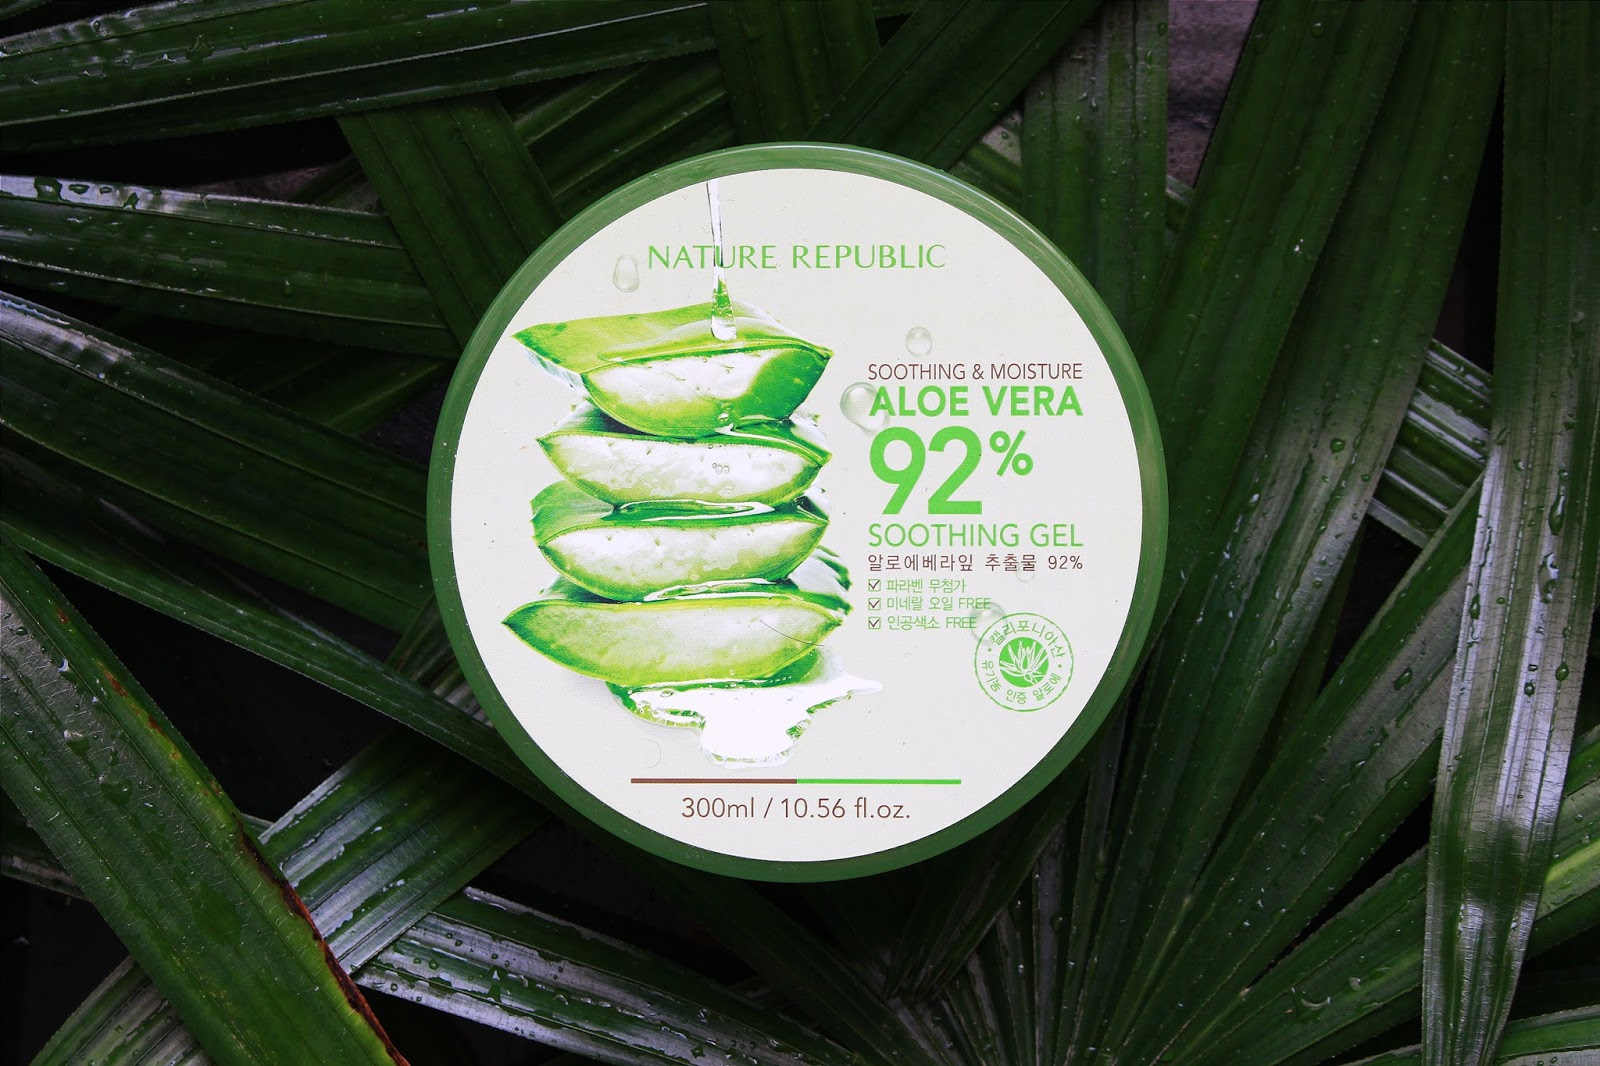 Nature Republic 92 Aloe Vera Soothing Gel Review Fishmeatdie So Today Ill Be Reviewing The Super Popular